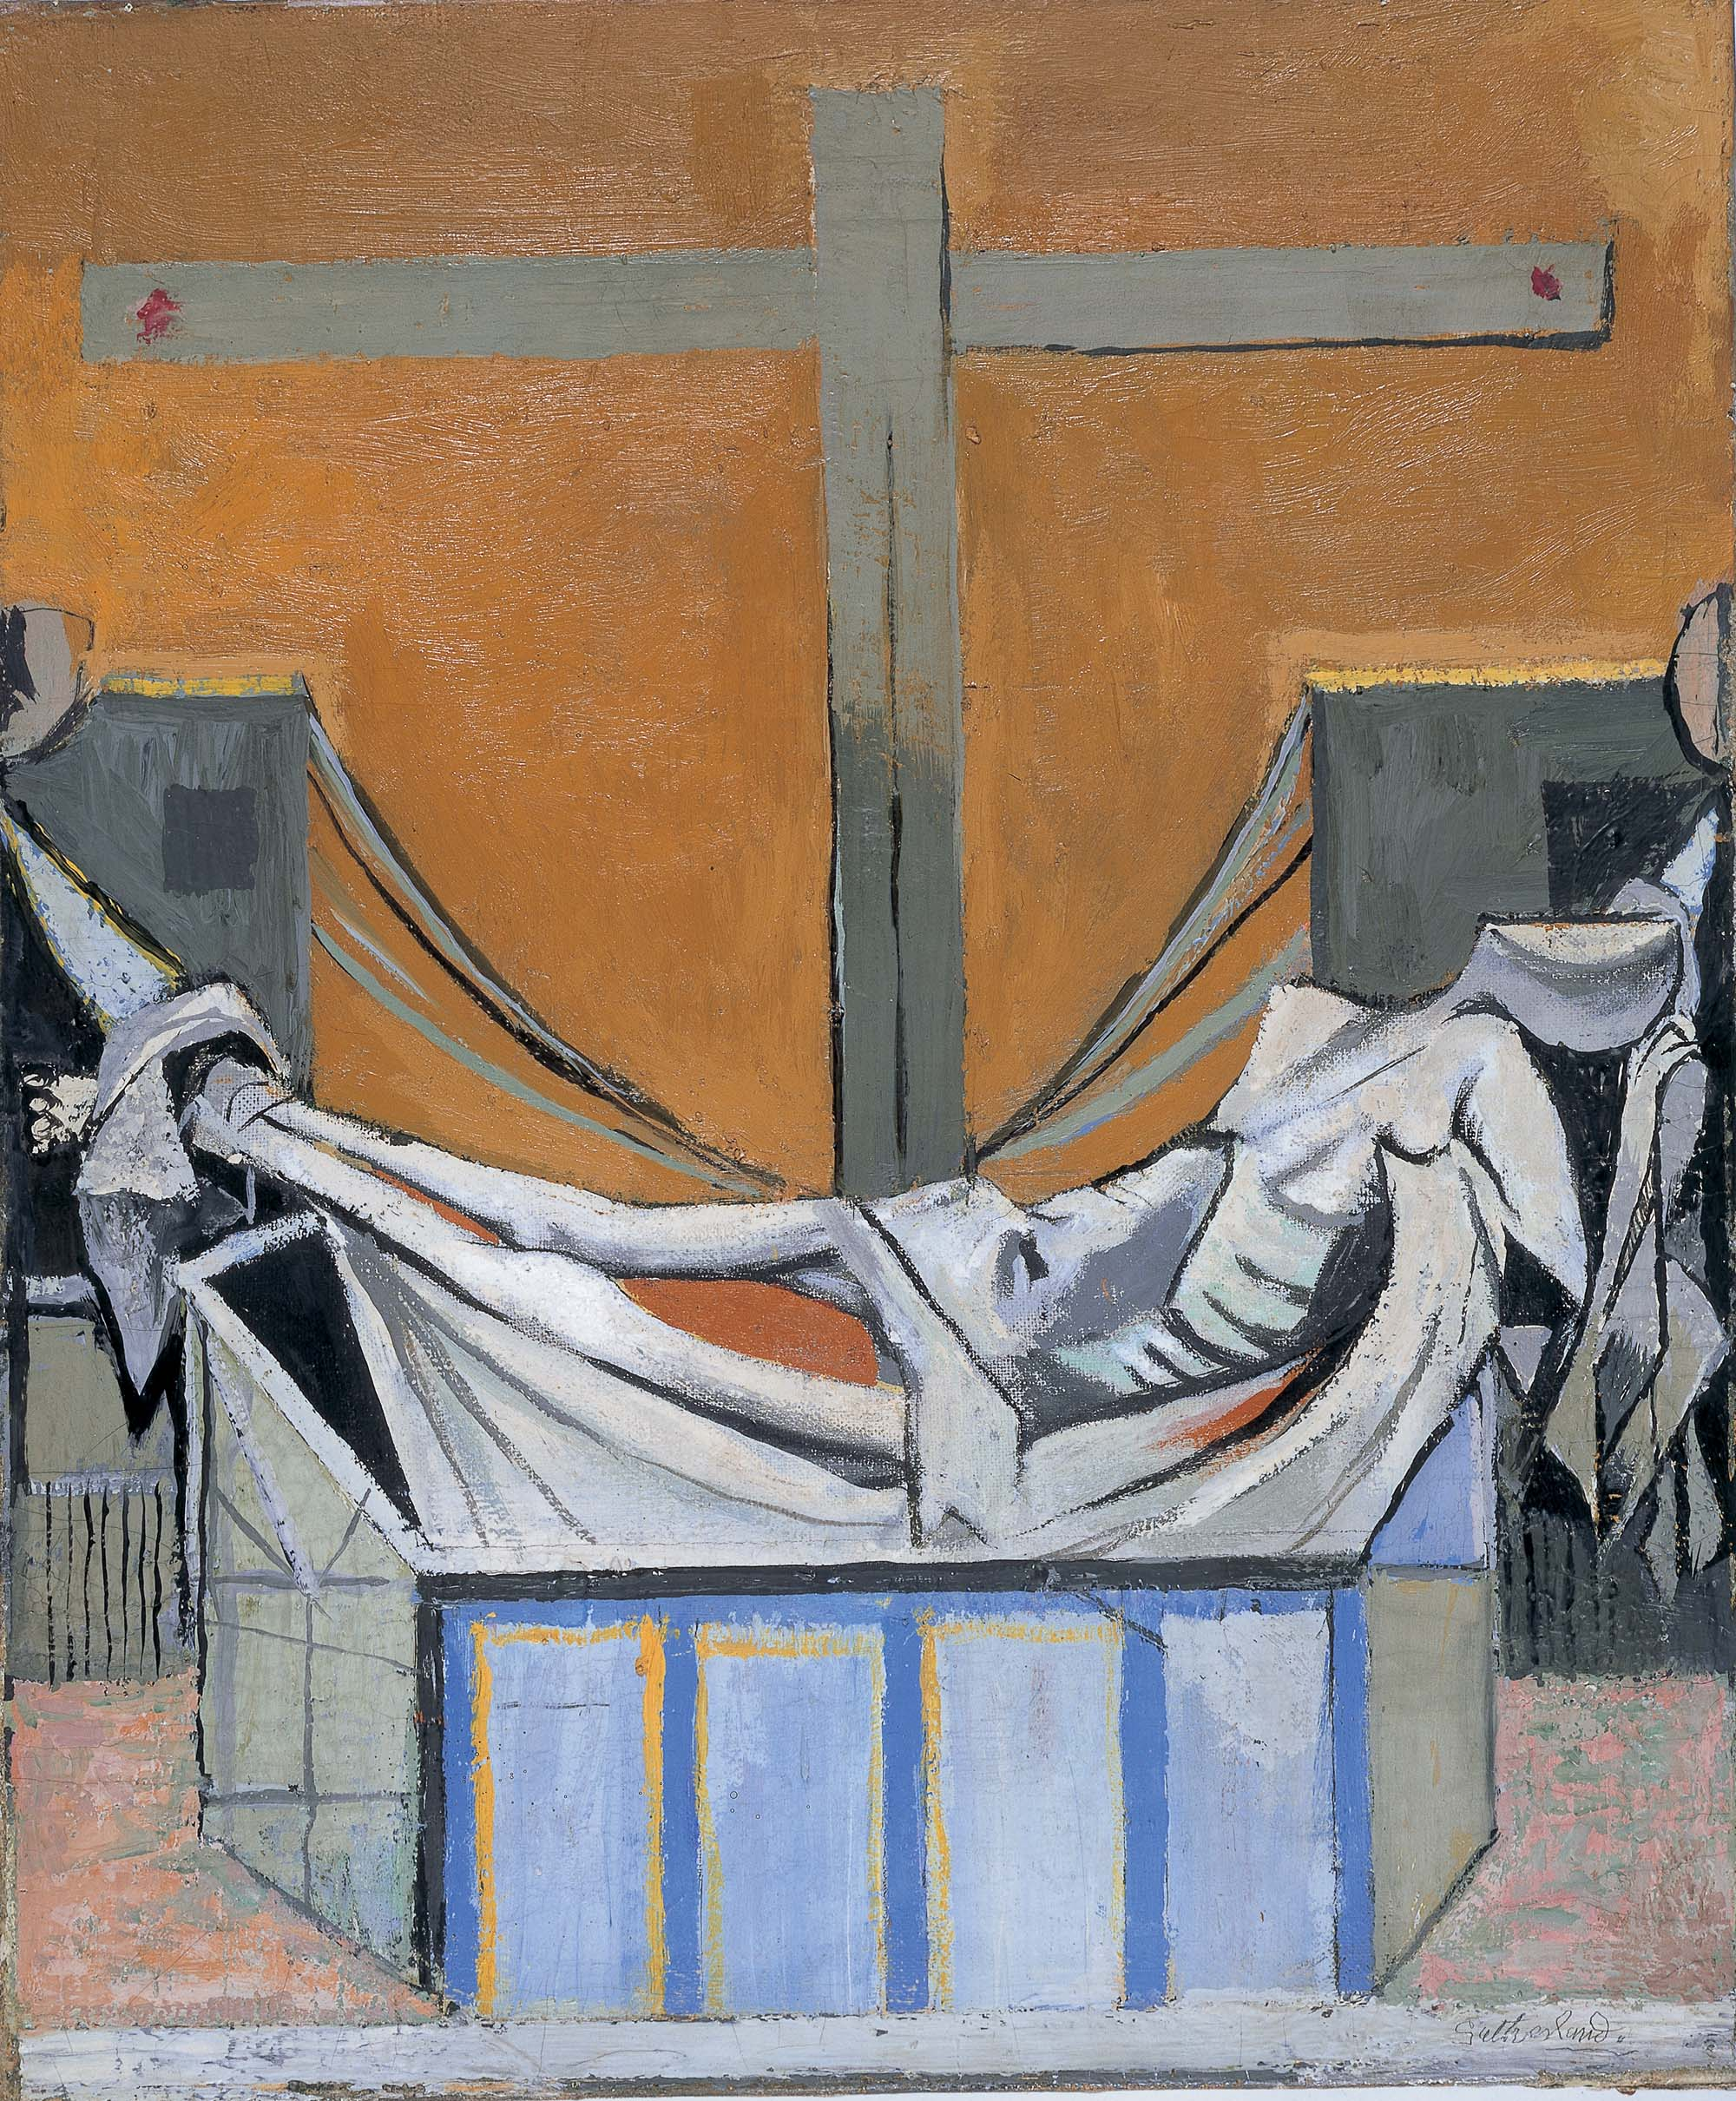 abstract painting showing the body of Christ laid across a tomb